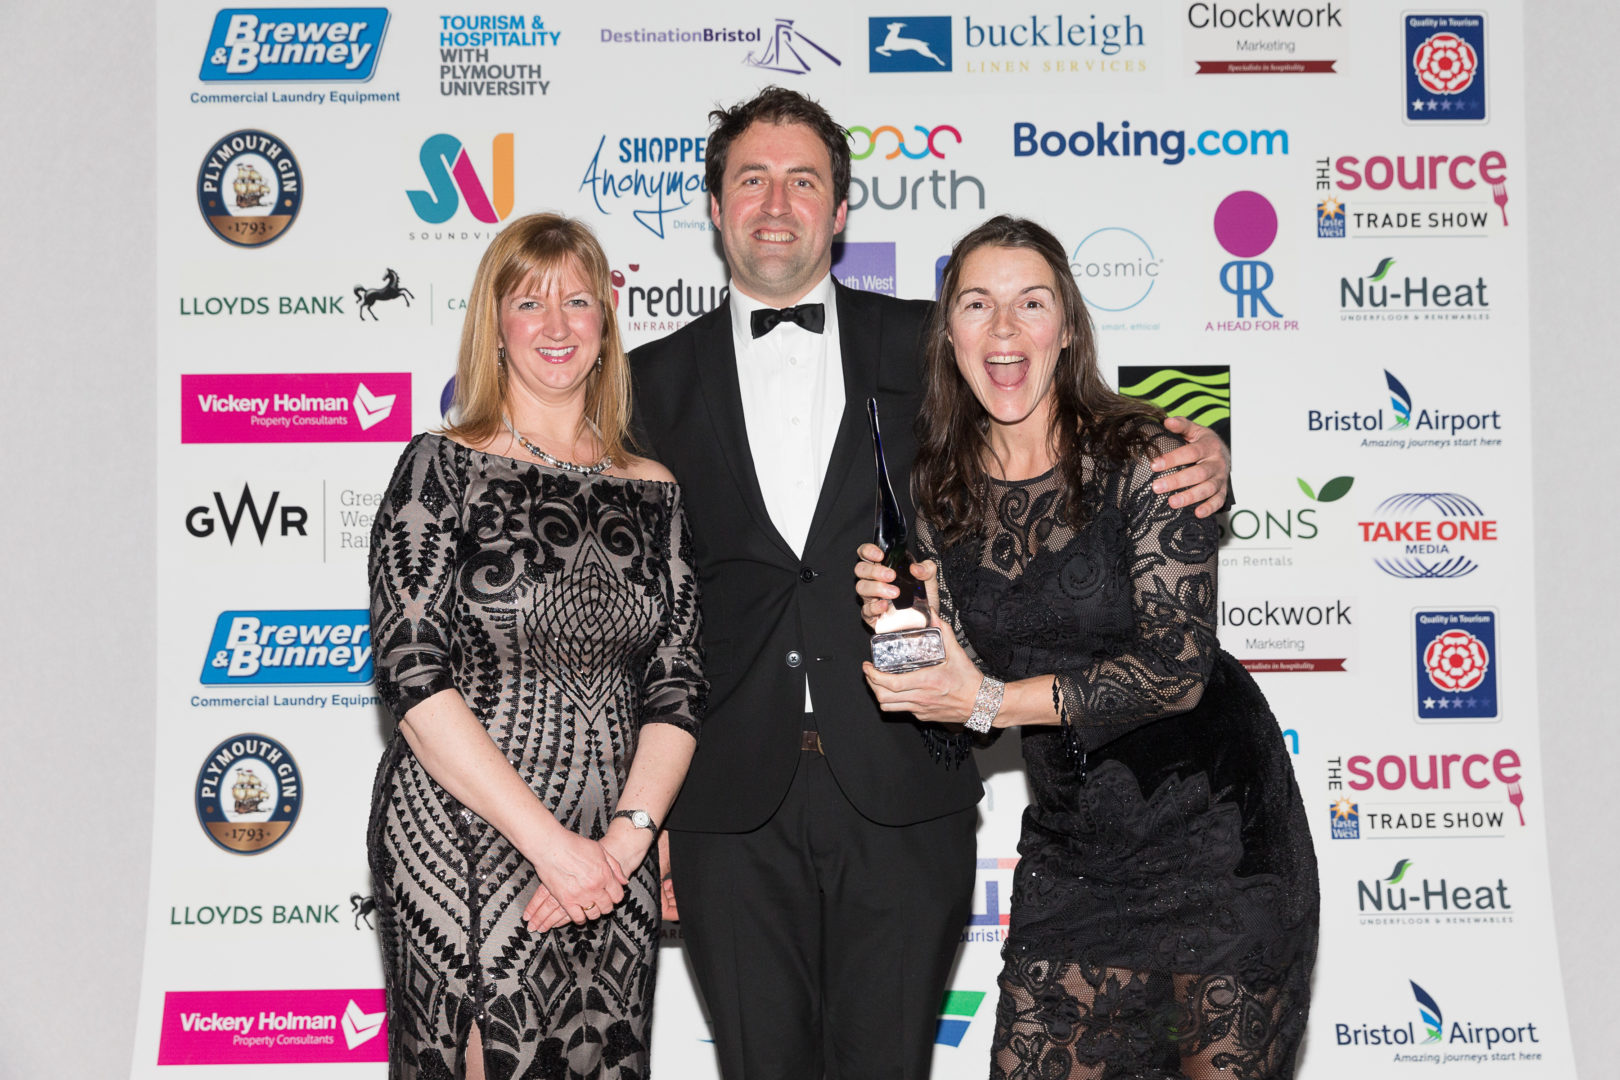 Three people in black tie holding a tourism award for Mylor Sailing School near Falmouth